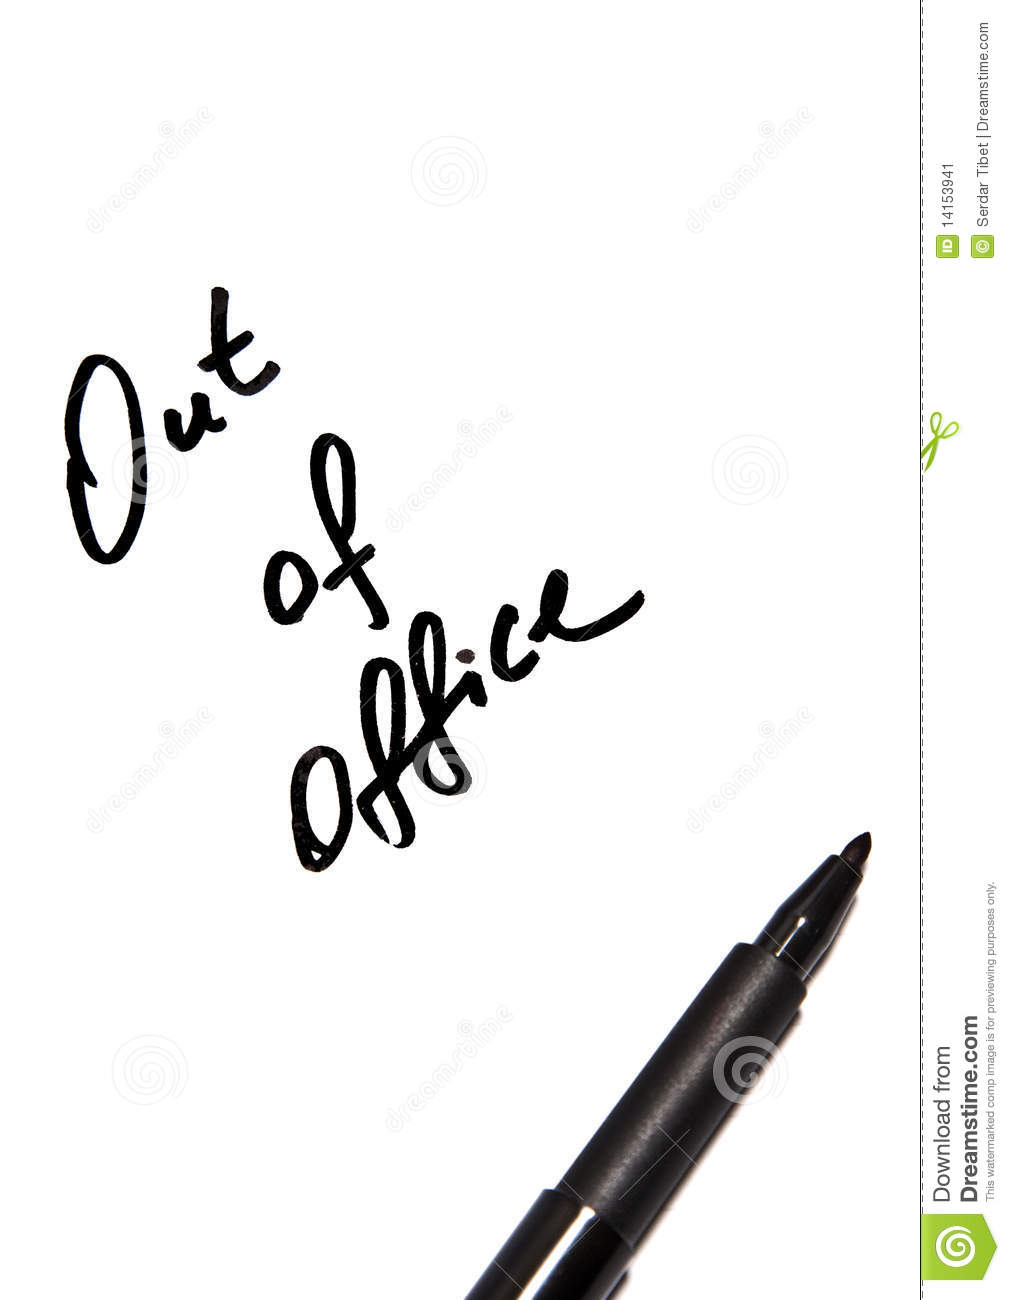 Out Of Office Script-Out of office script-19